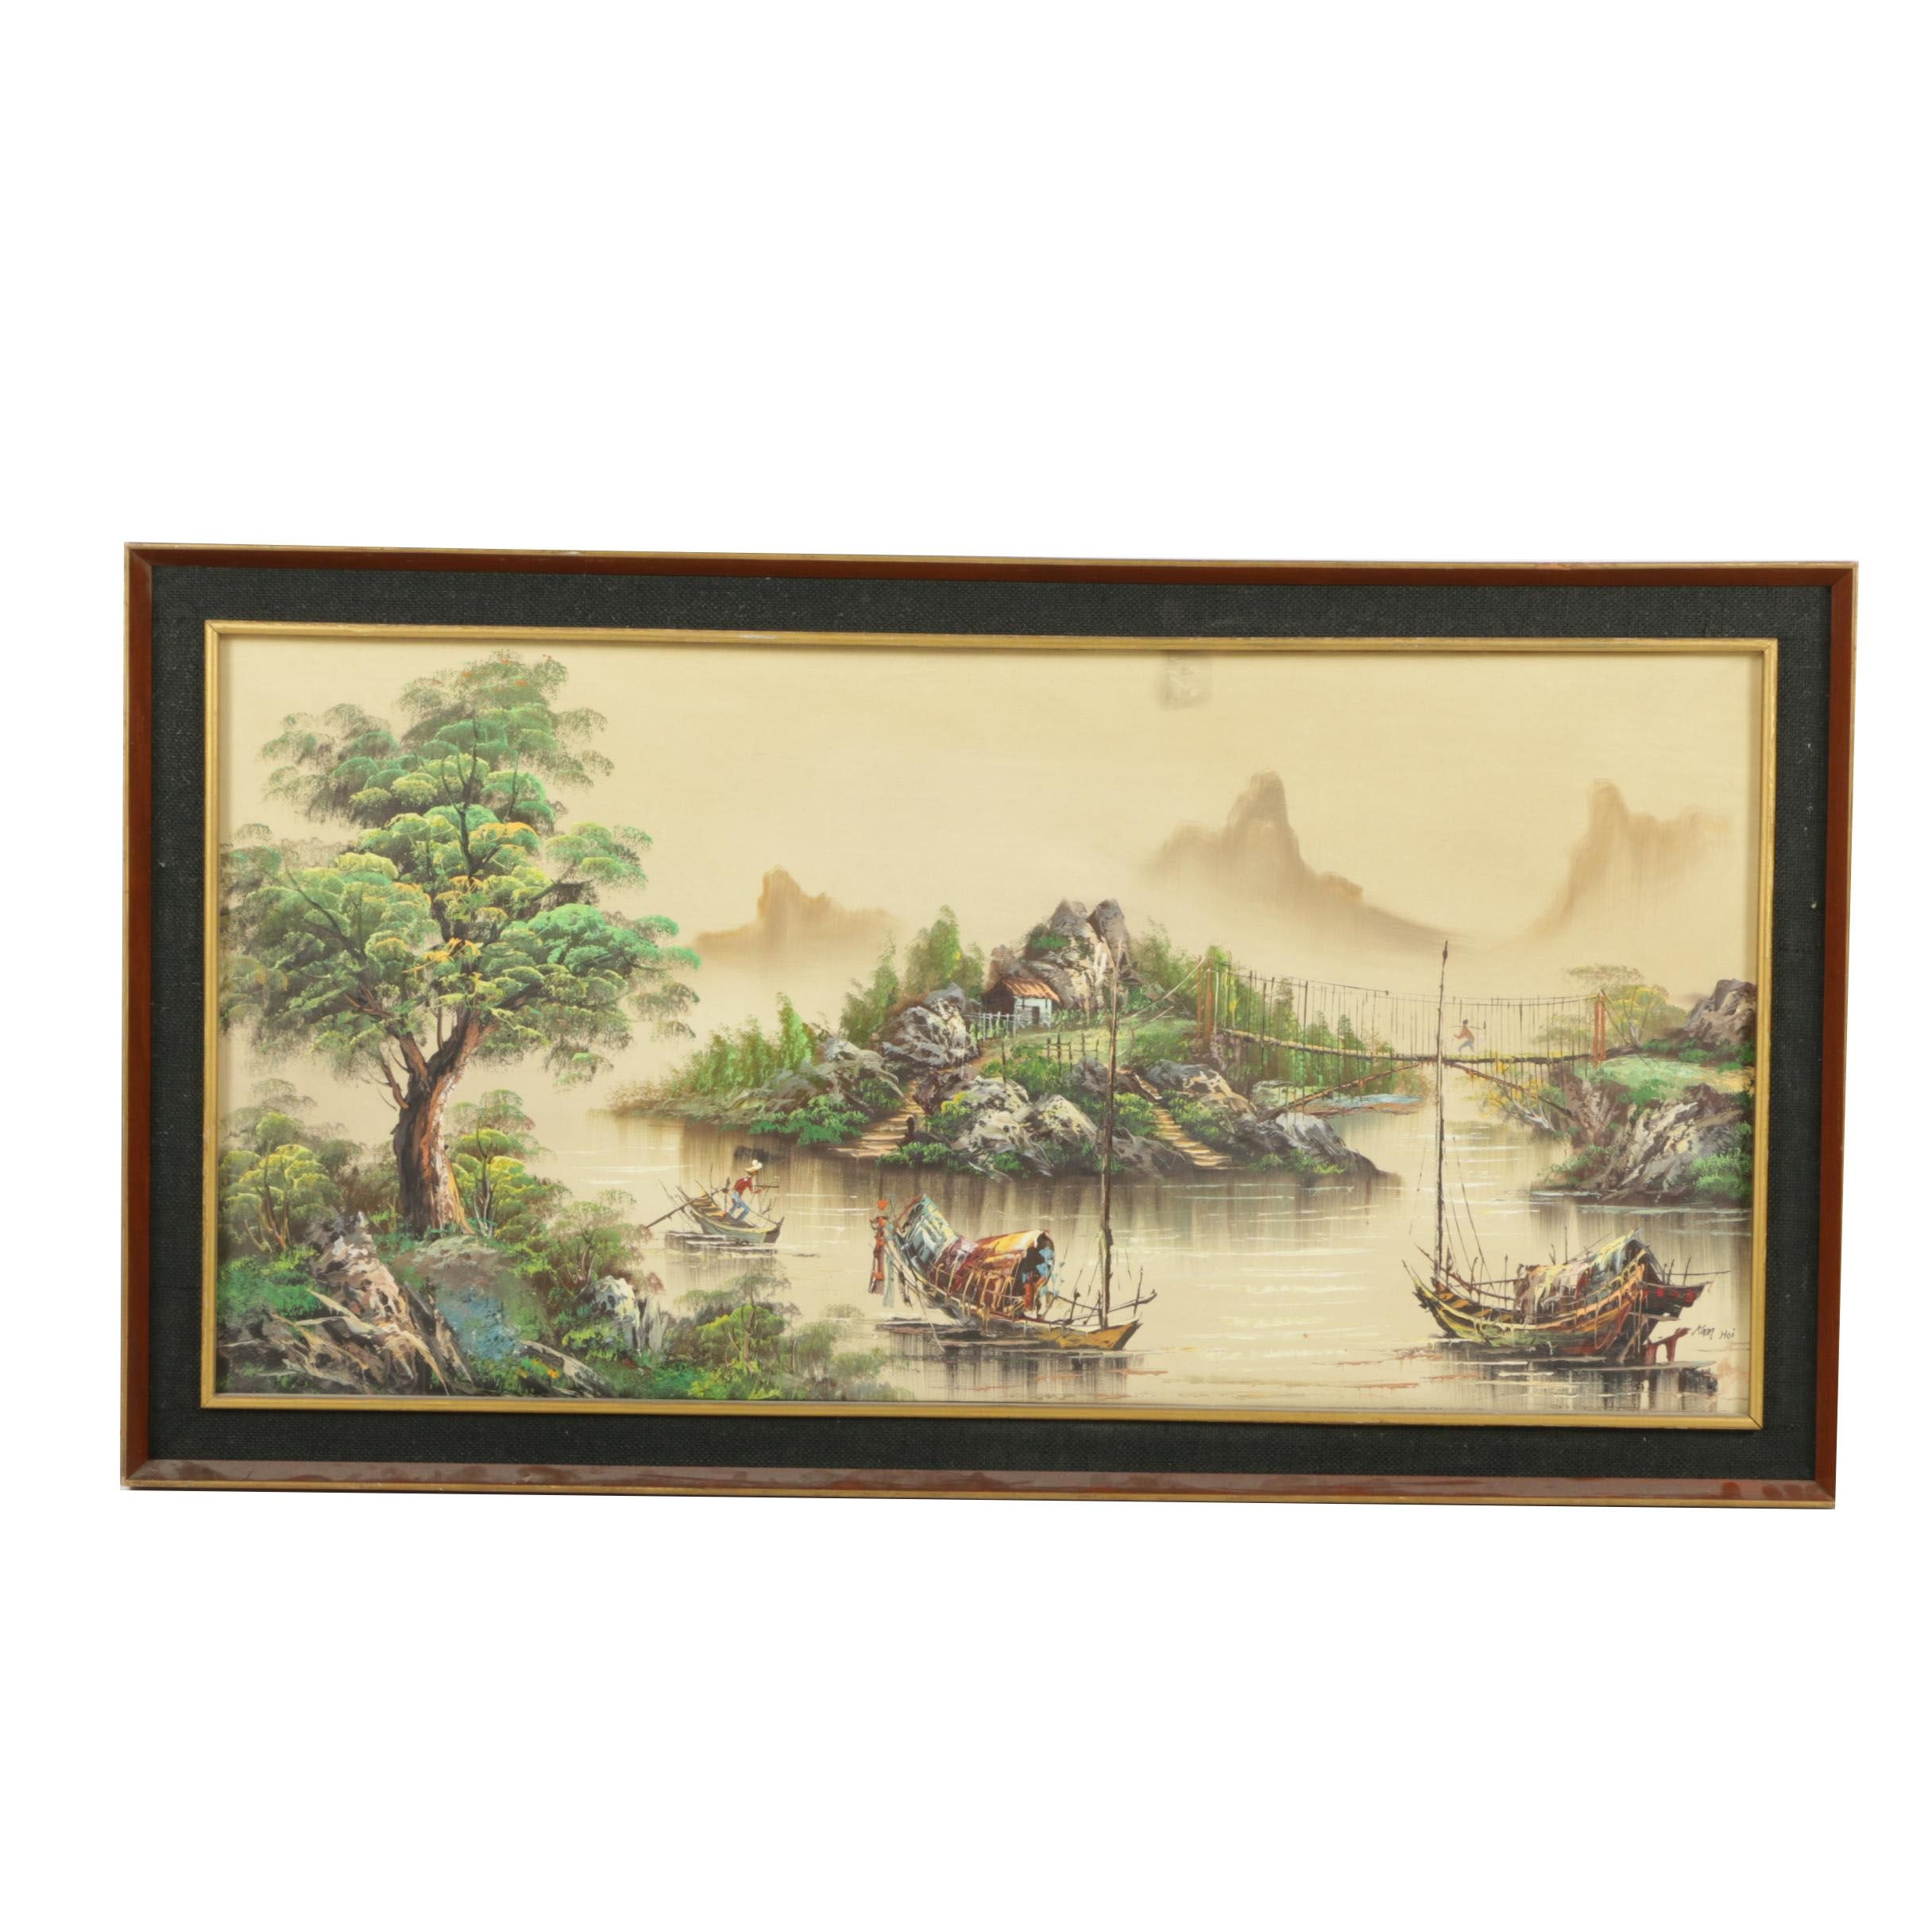 Kam Hoi Oil Painting on Canvas of East Asian Harbor Landscape